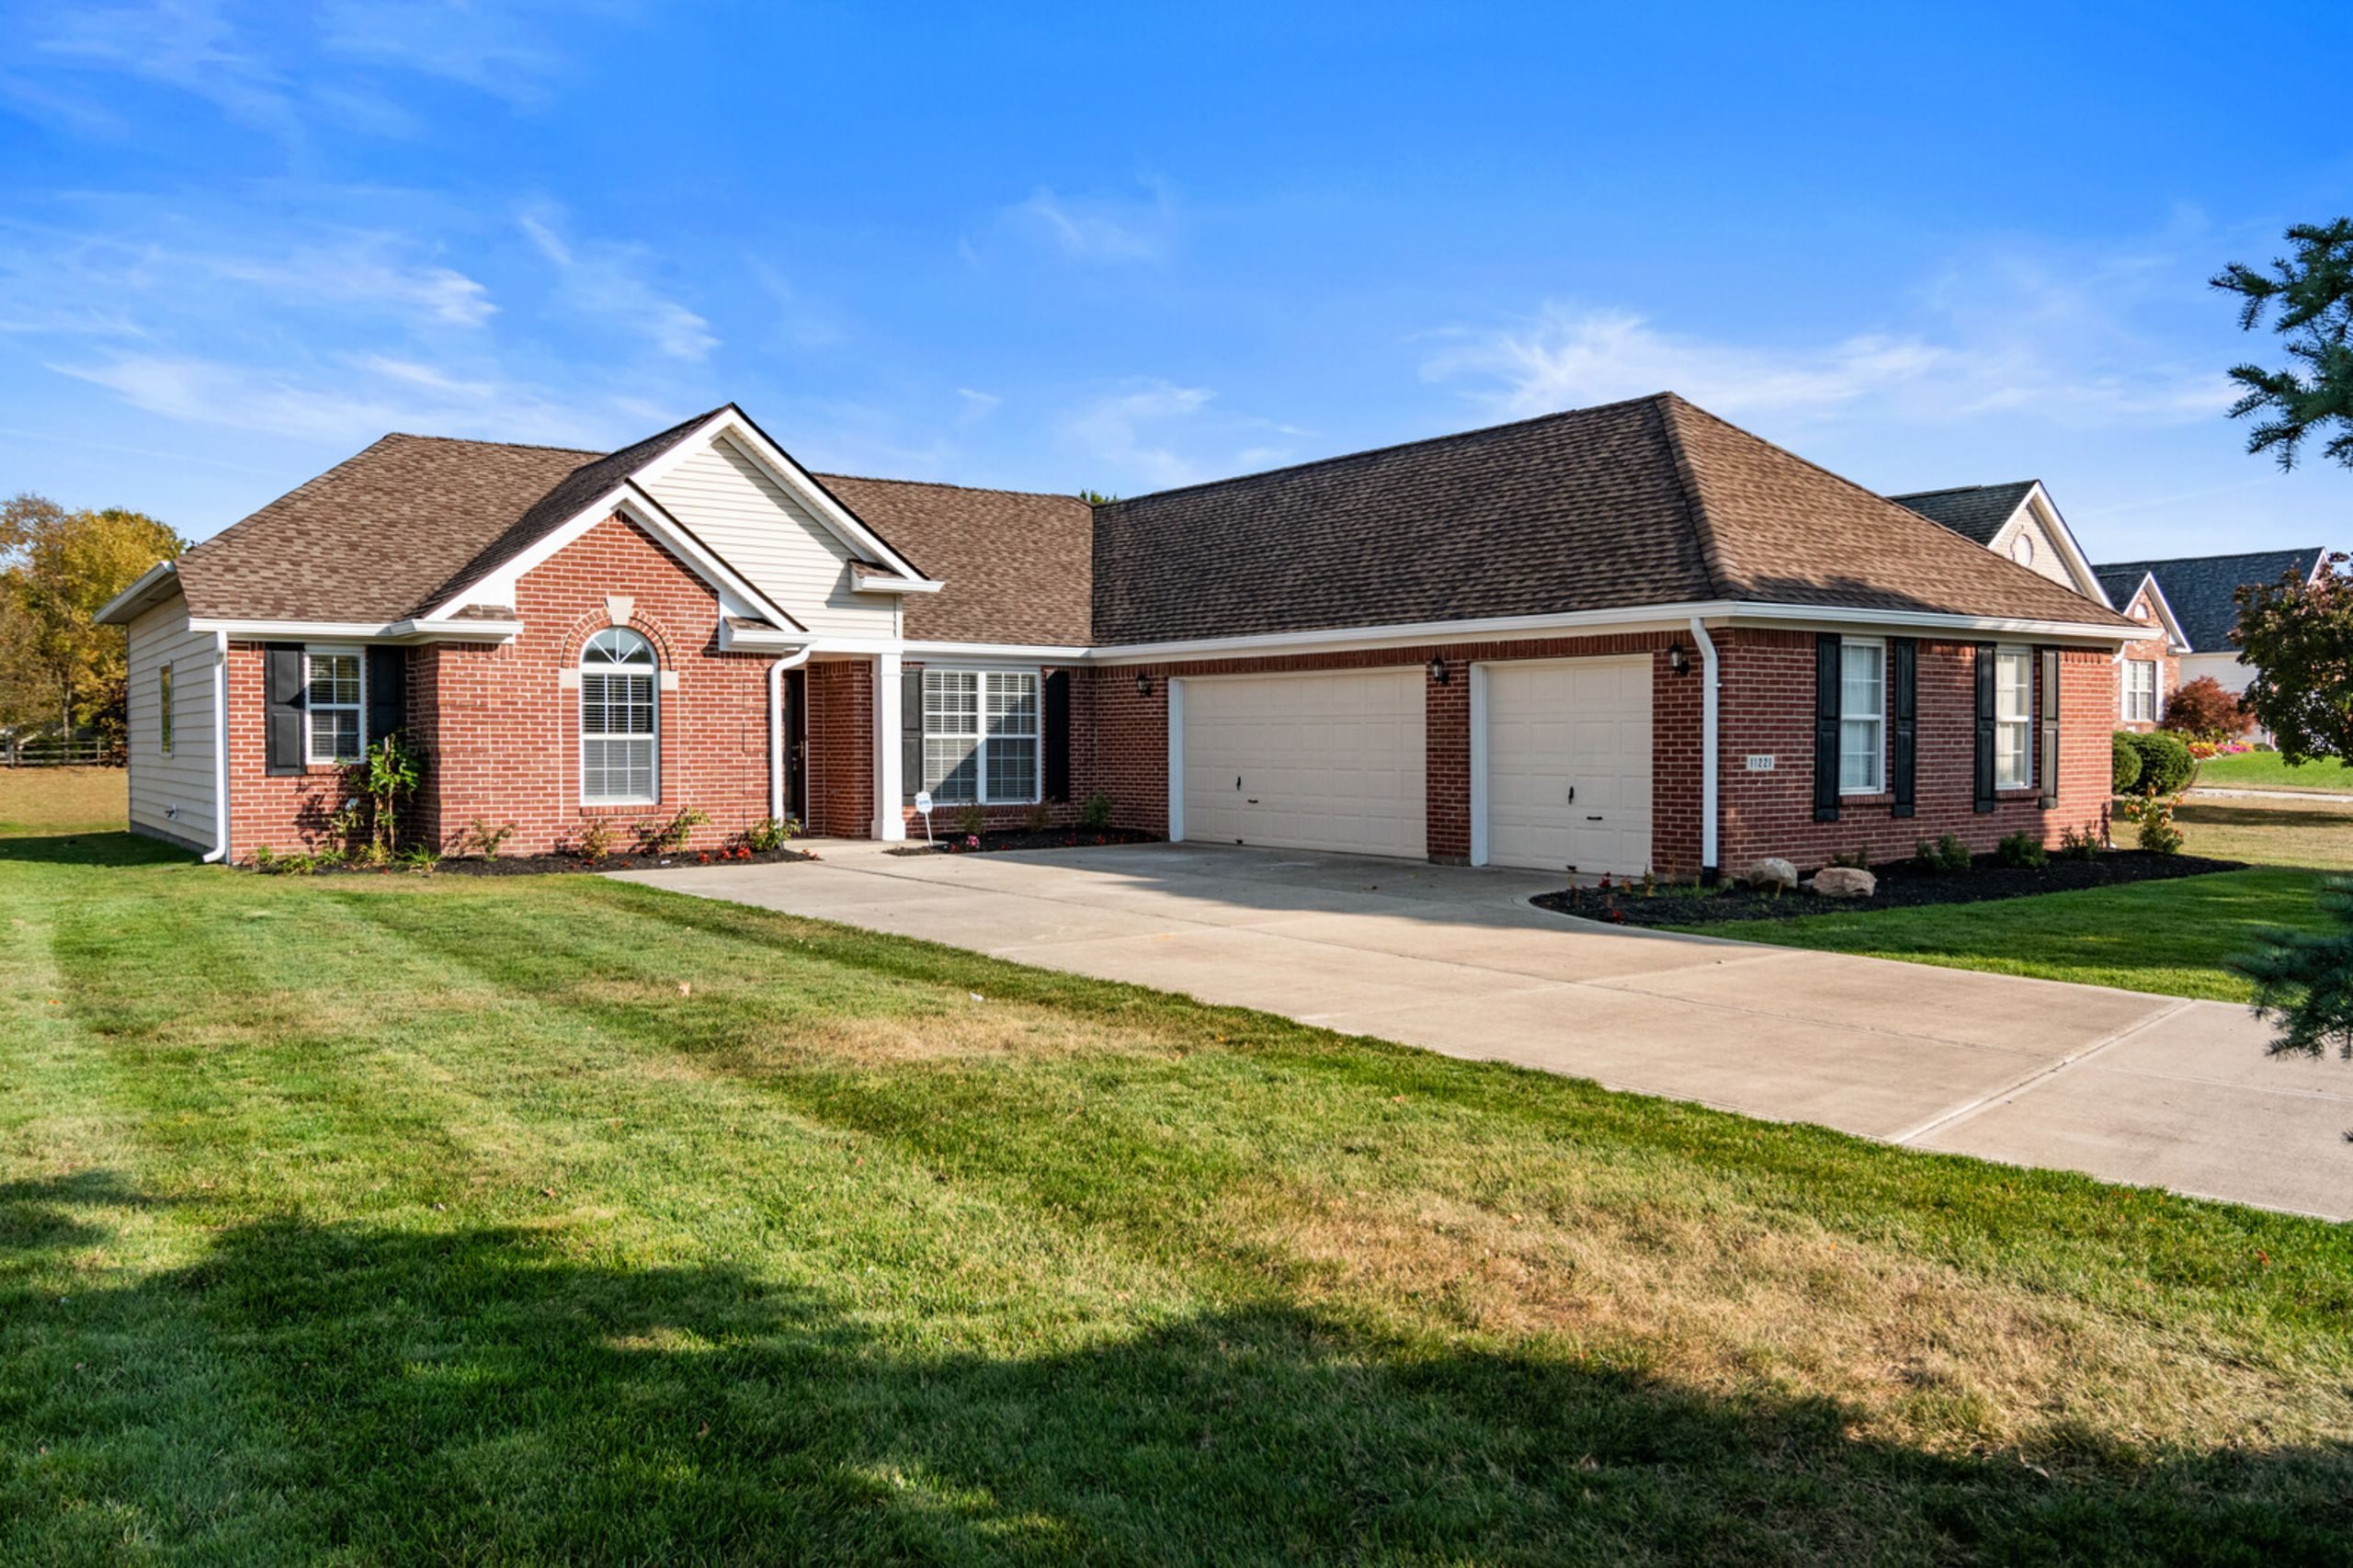 SOLD!  New neighborhood record in Spyglass Falls in Fishers.